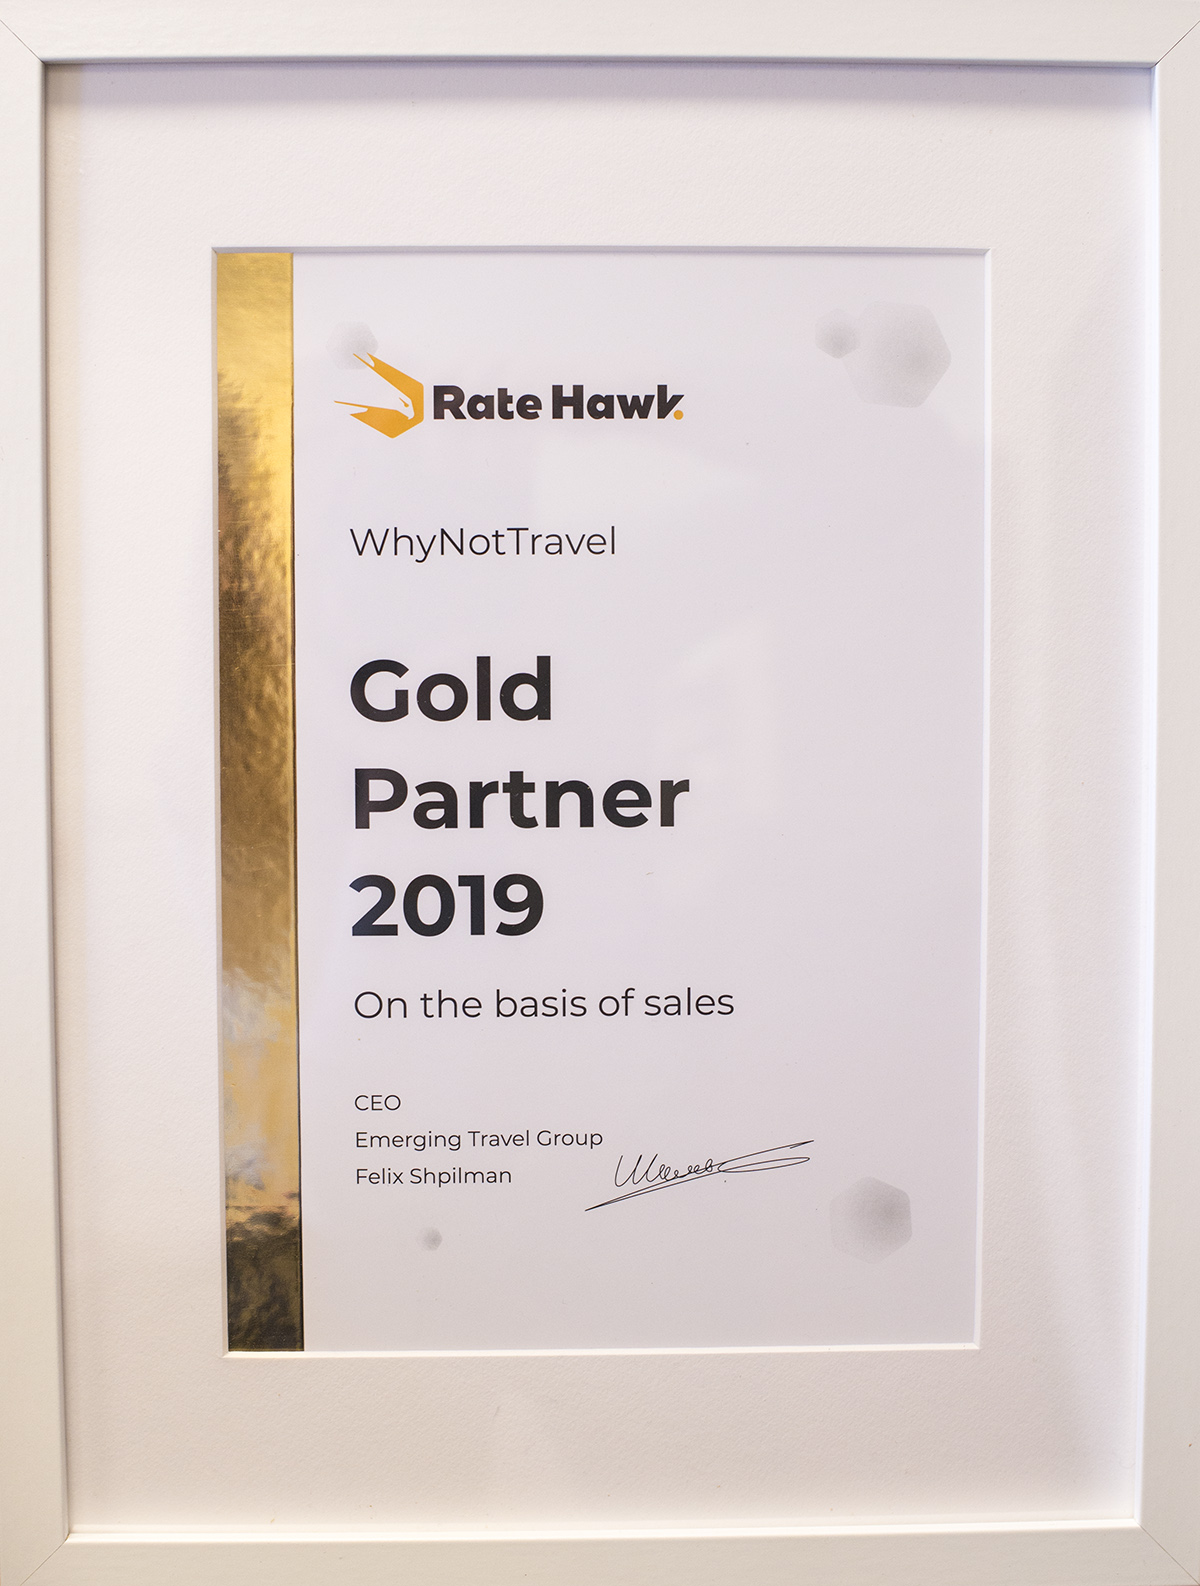 GOLD PARTNER 2019 OD RATEHAWK